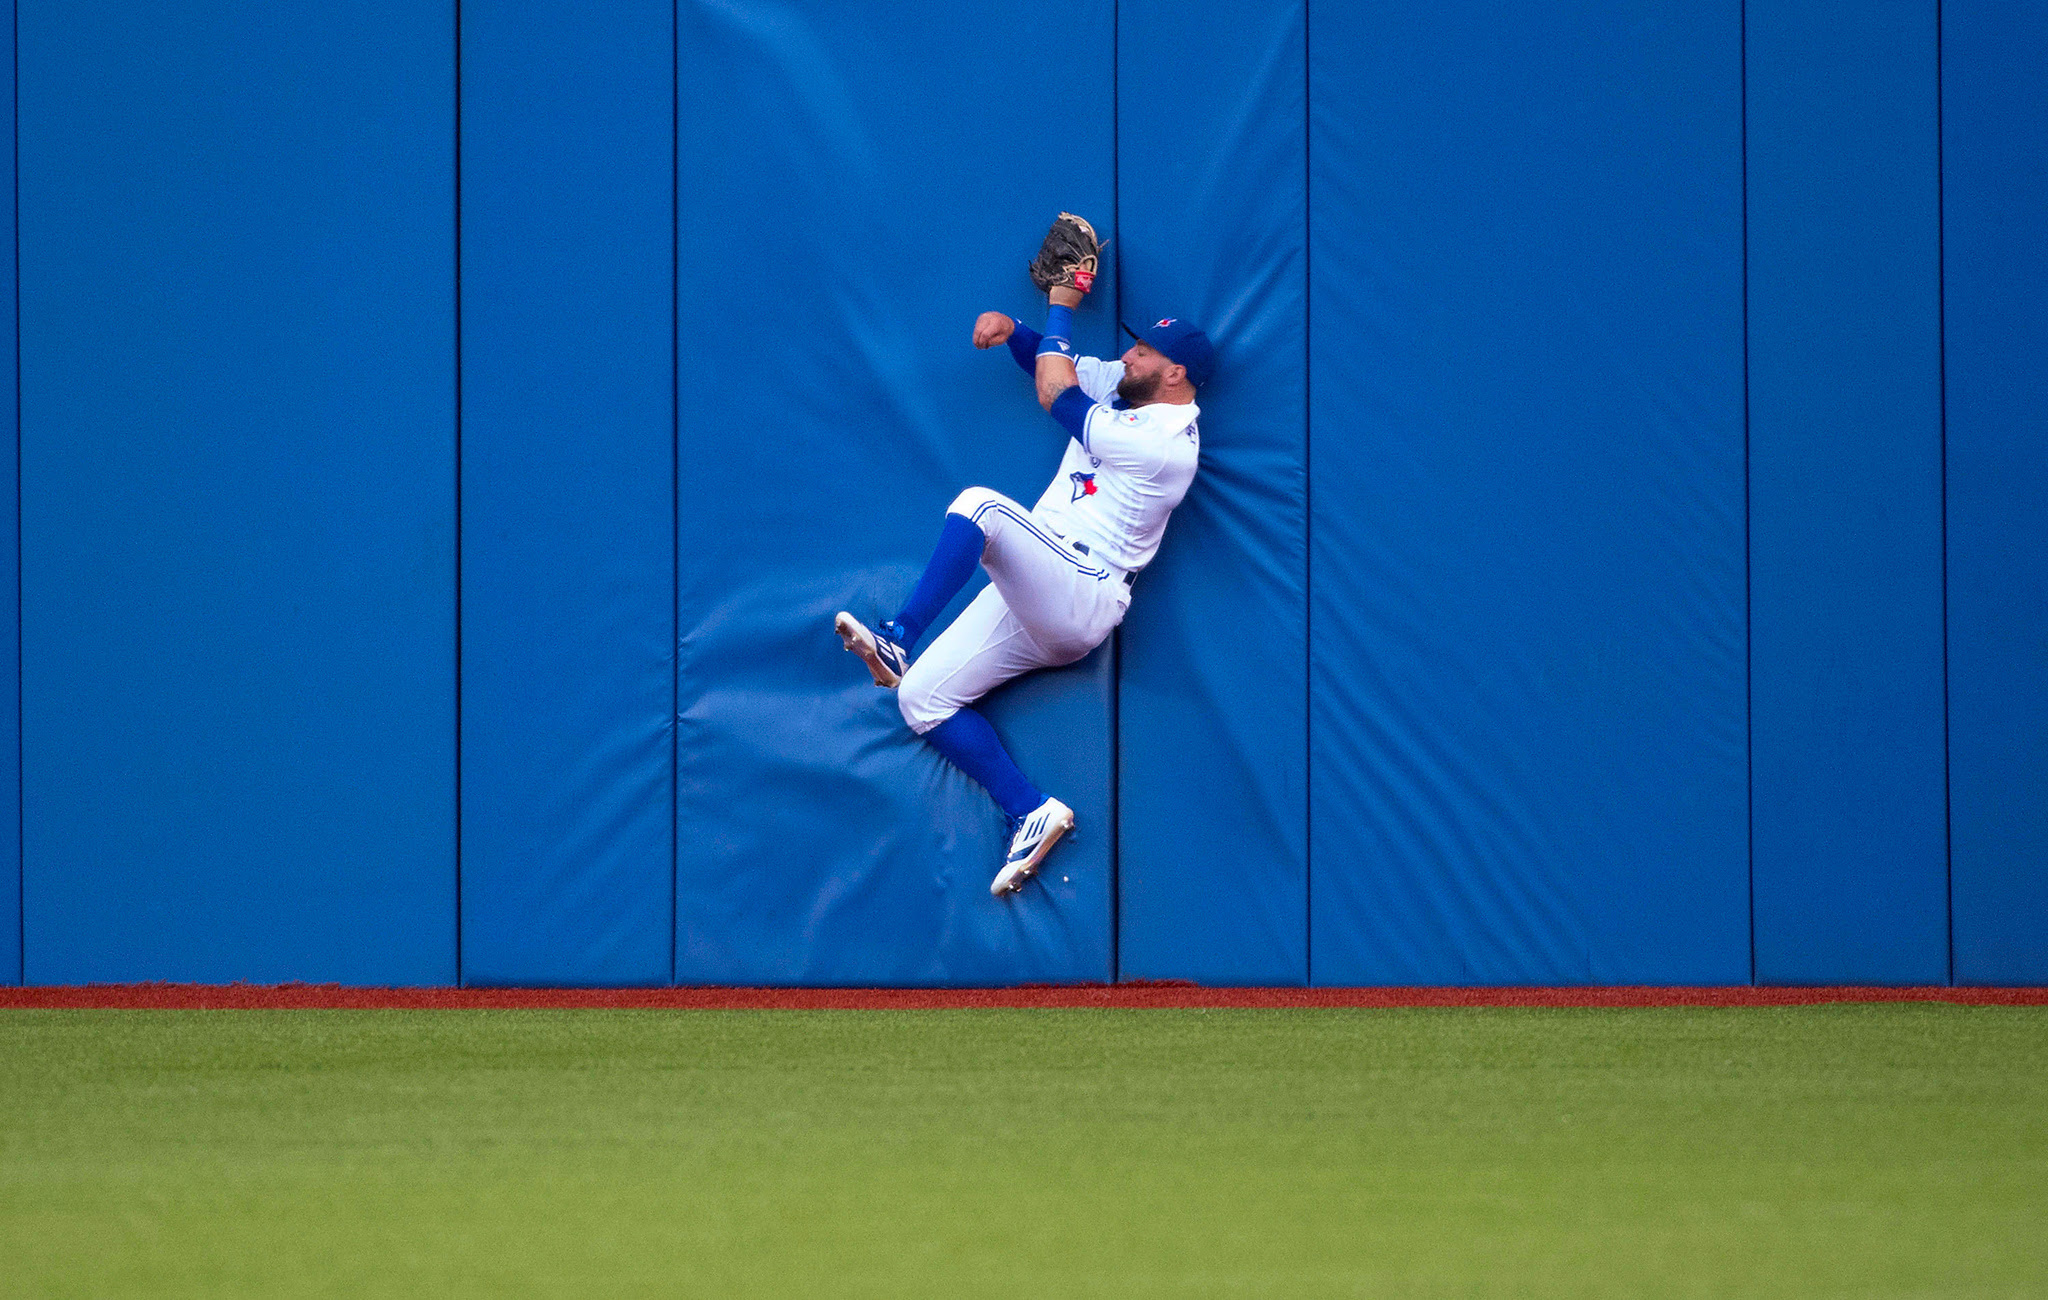 Jun 21, 2016; Toronto, Ontario, CAN; Toronto Blue Jays center fielder Kevin Pillar (11) catches a fly ball for an out during the fourth inning in a game against the Arizona Diamondbacks  at Rogers Centre. Mandatory Credit: Nick Turchiaro-USA TODAY Sport